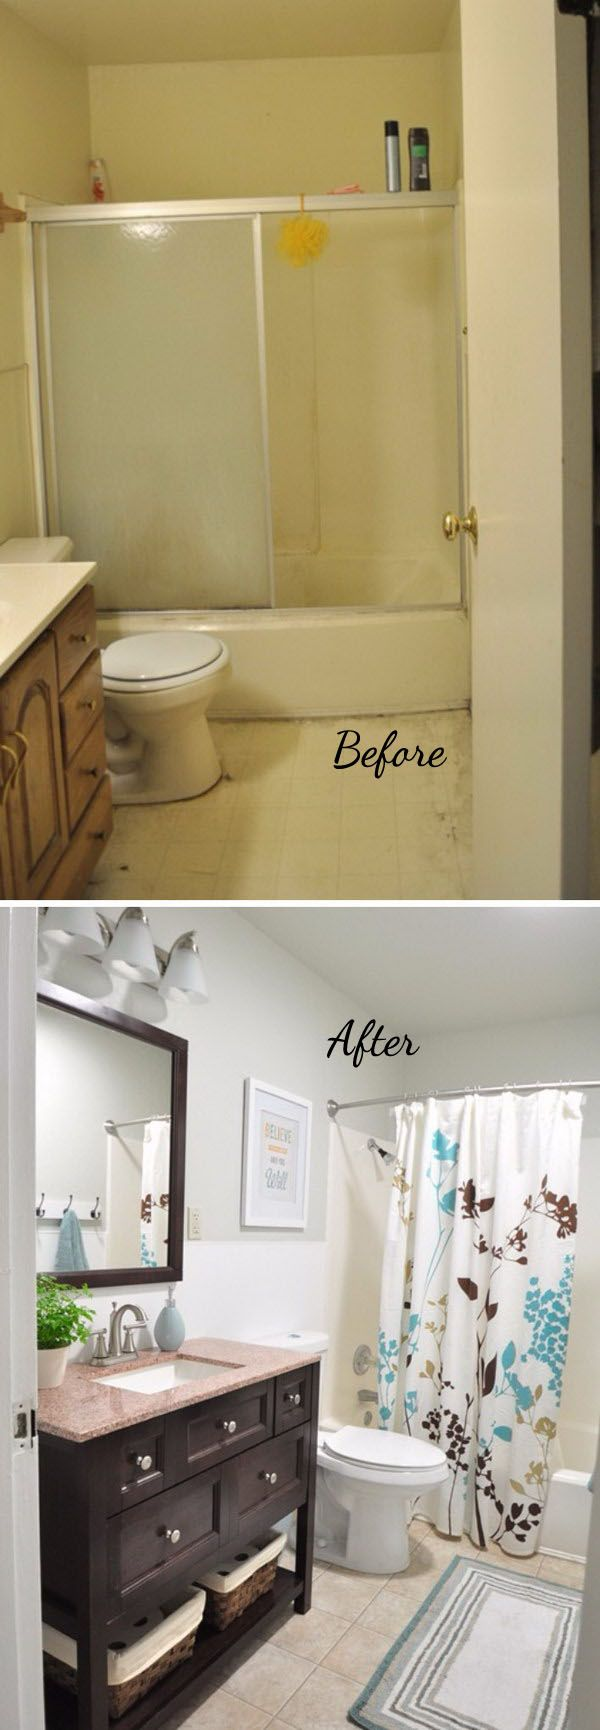 Old House Bathroom Remodel Home Design Ideas - Old home bathroom remodel